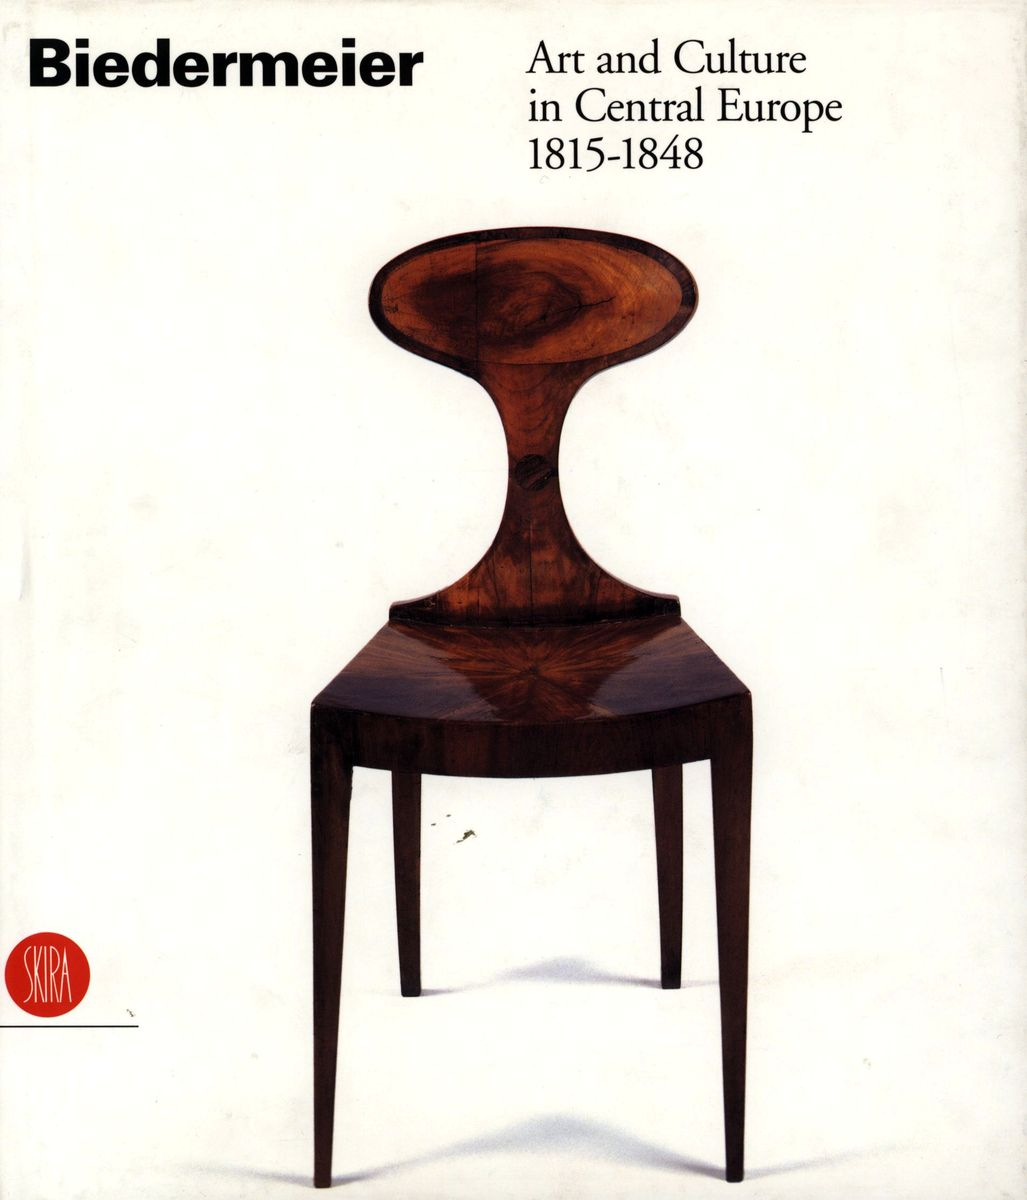 Biedermeier. Art and Culture in Central Europe 1815-1848 по 1 500.00 руб от изд. Skira Editore